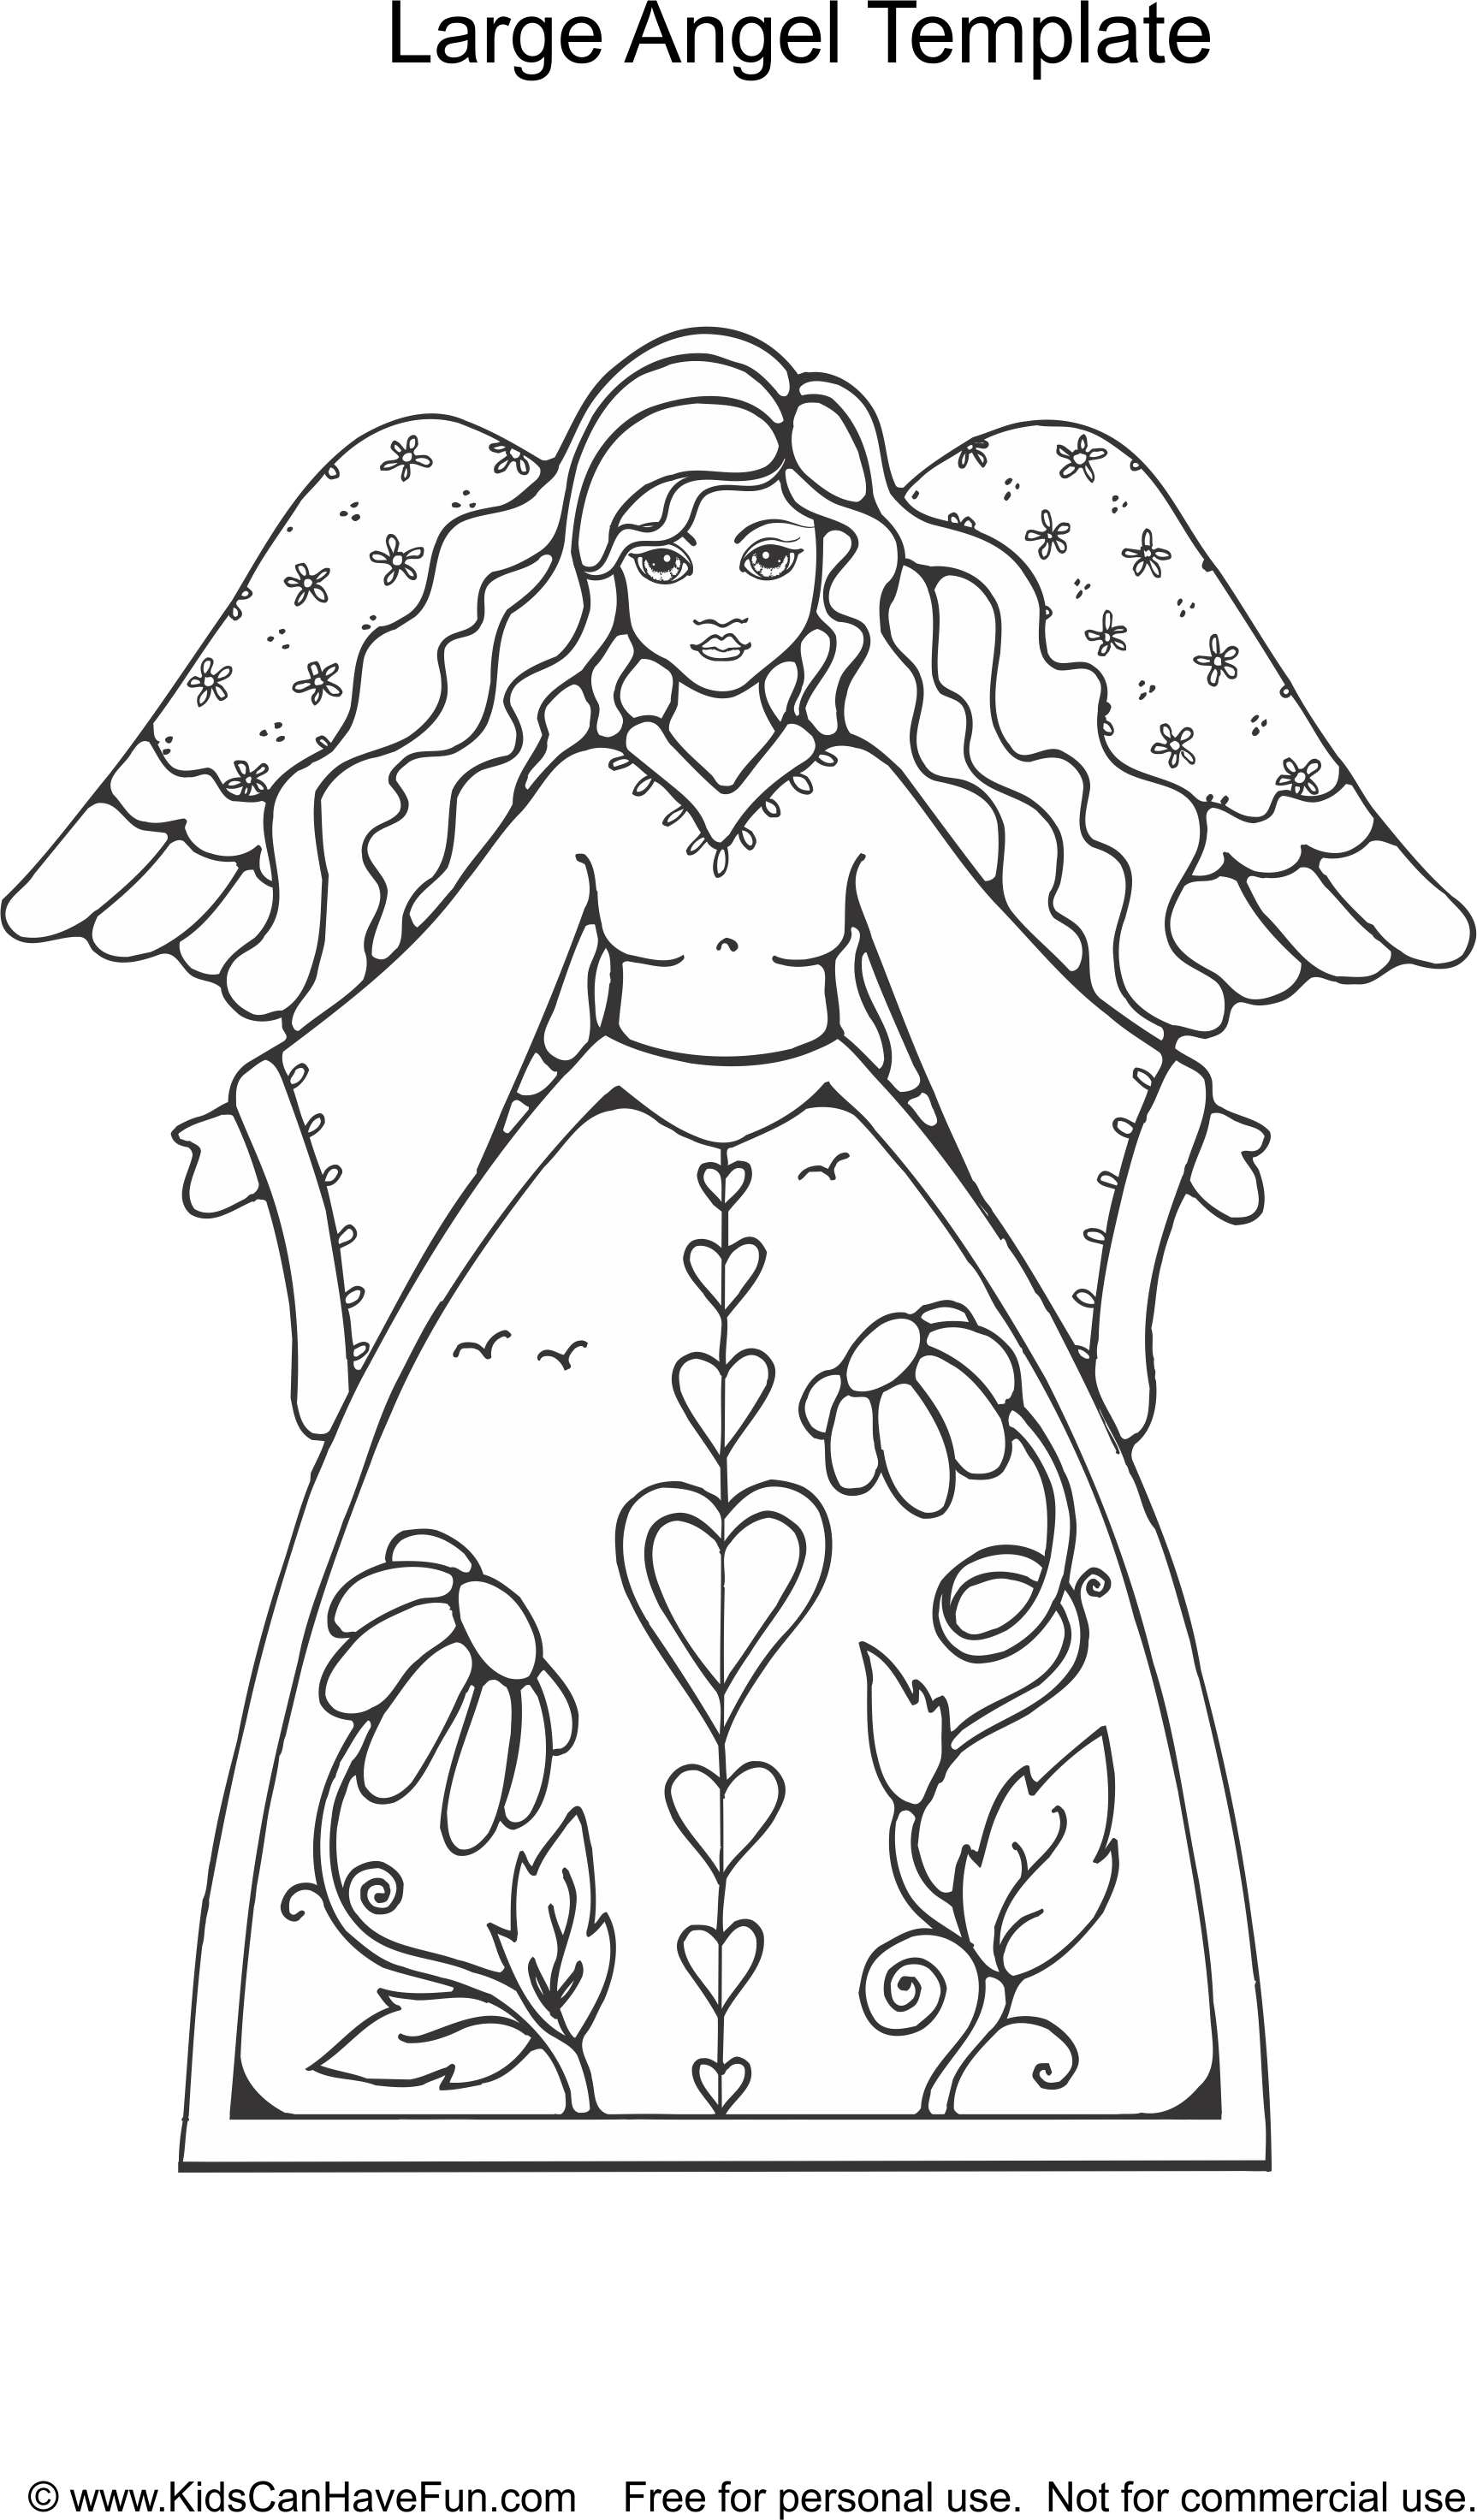 Large Angel Christmas Template http://www.kidscanhavefun.com ...